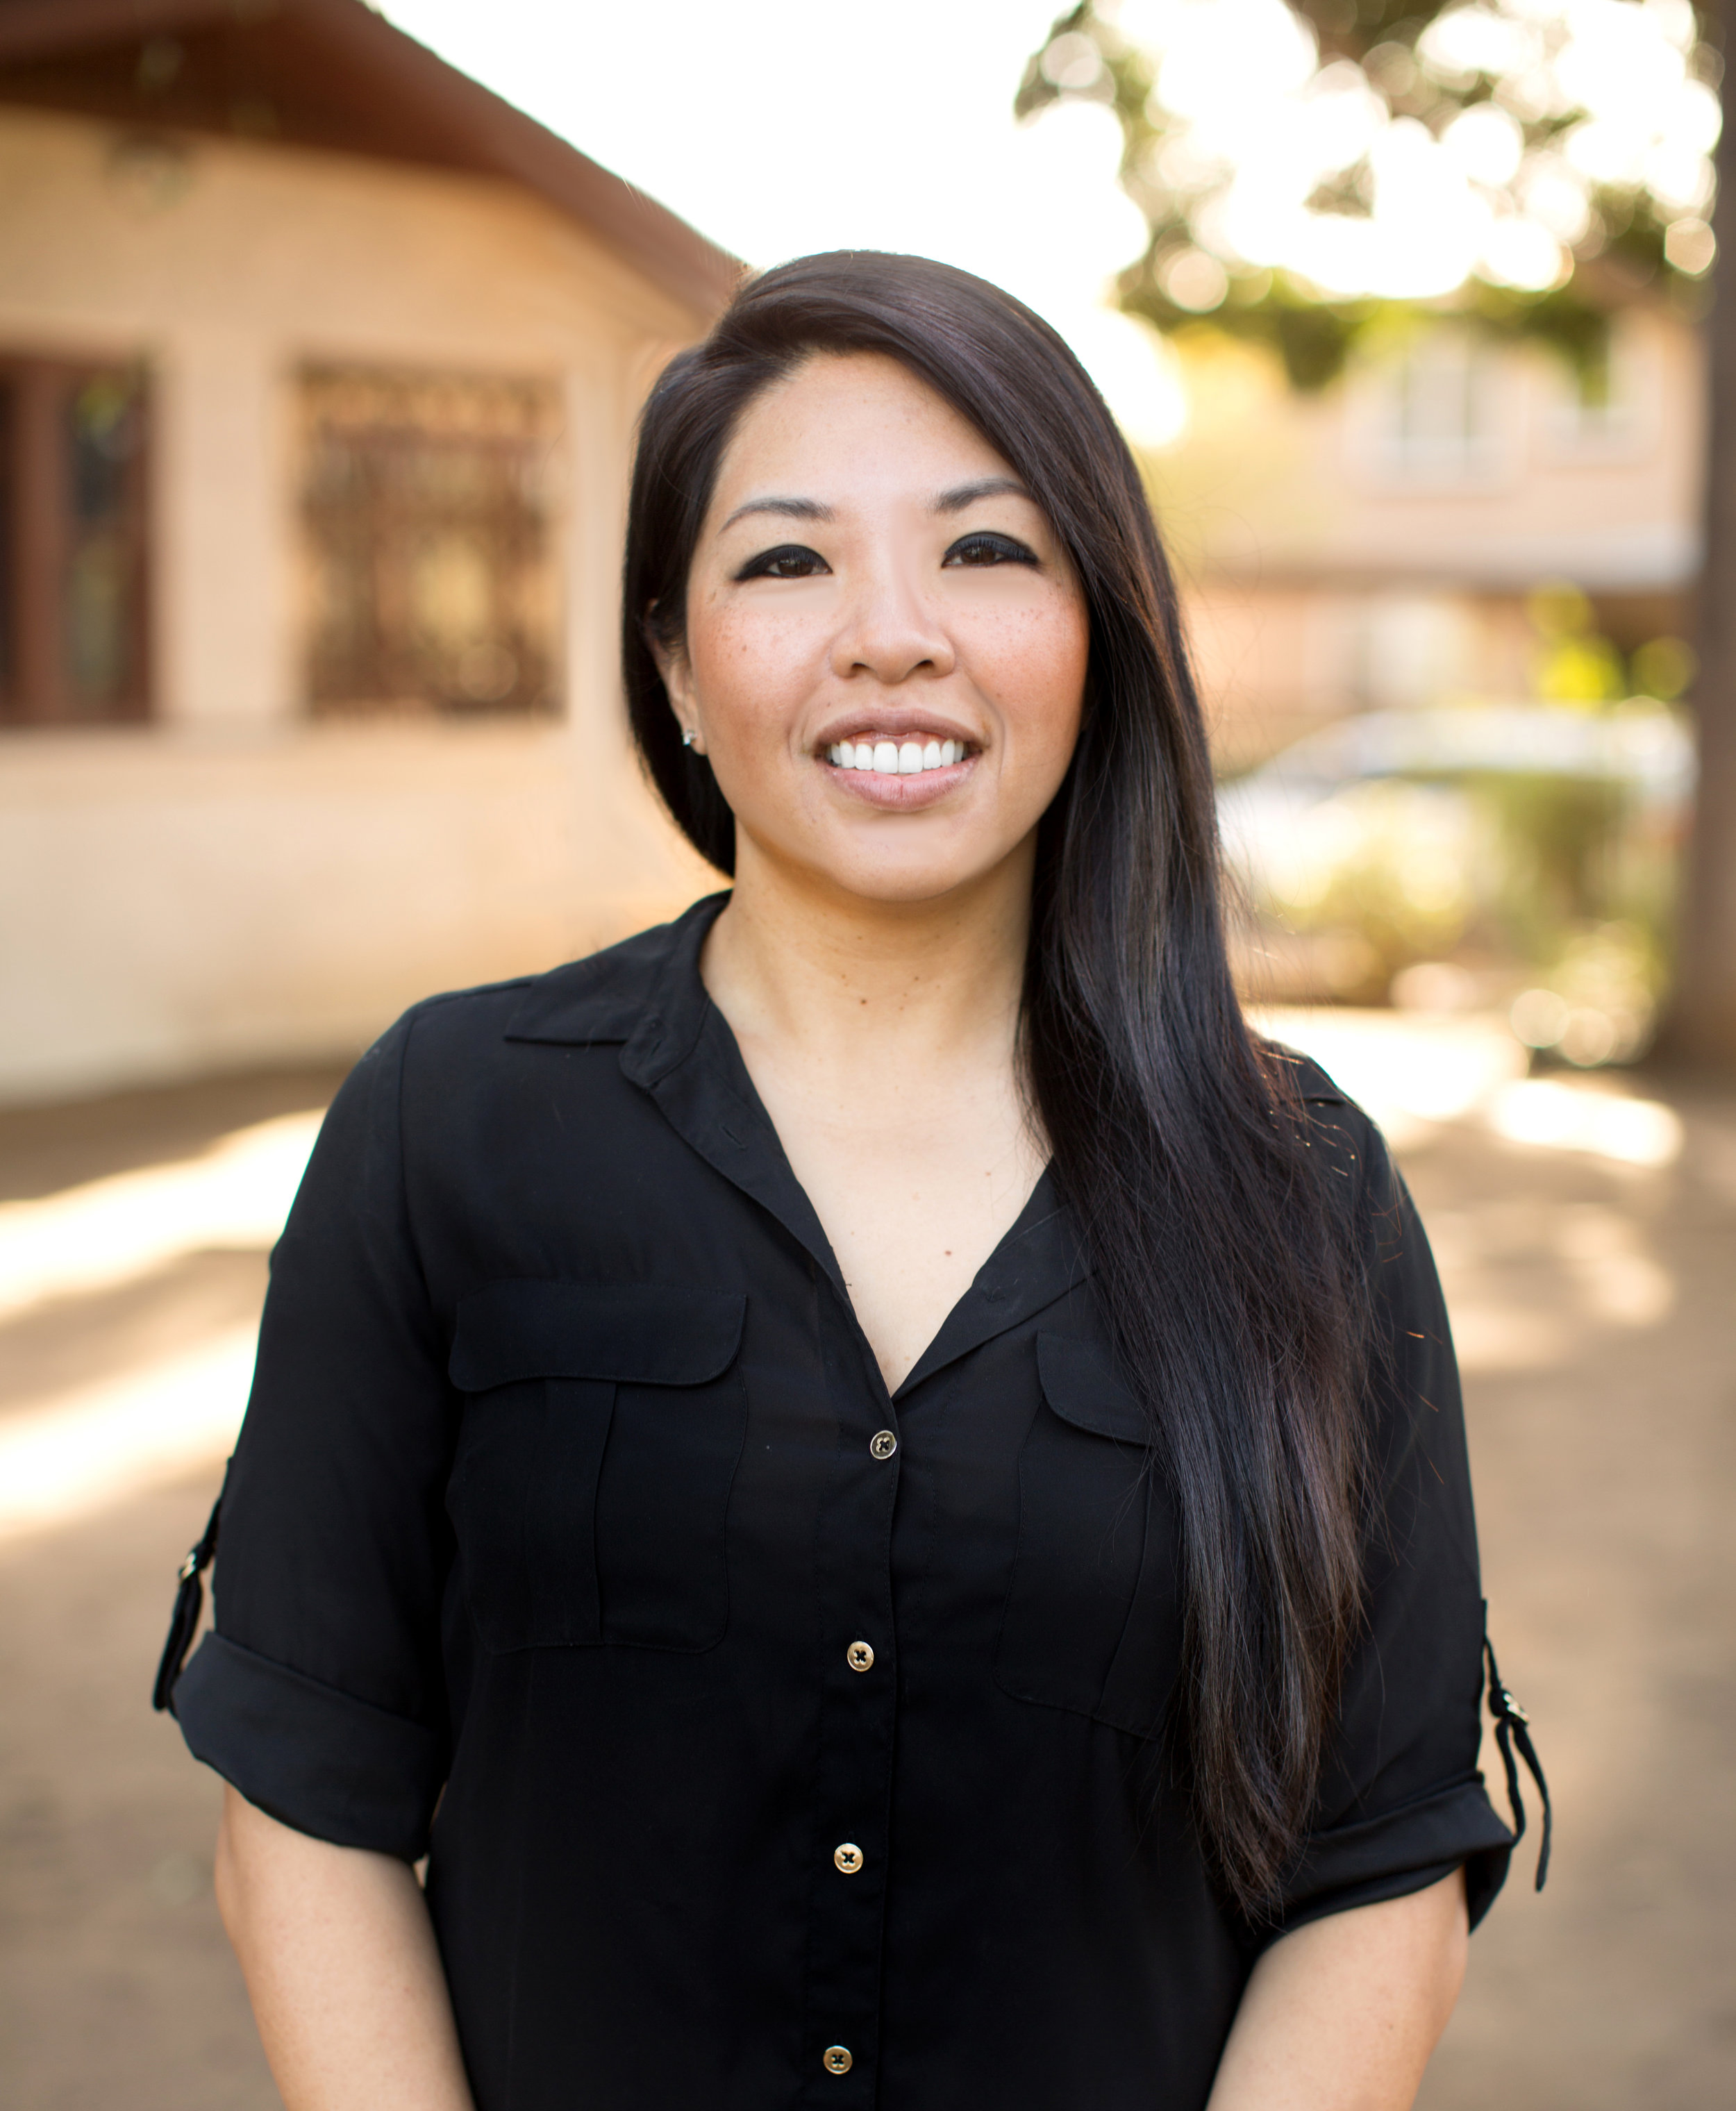 Dr. Bui has spent a lot of her time on the fields, worked closely with some of the best sports physicians in the nation, has led the medical staff of various sports teams, possesses so much passion for her career, and is 100 % dedicated to serving the San Diego community with open arms. She has focused all of her professional education and training on excellence in Chiropractic Sports Medicine but you don't need to be an athlete to be under her care. She also specializes in family wellness, nutritional counseling, rehabilitation, and is an all around wellness warrior! If you are ready to positively change your life, come in and meet her yourself! -